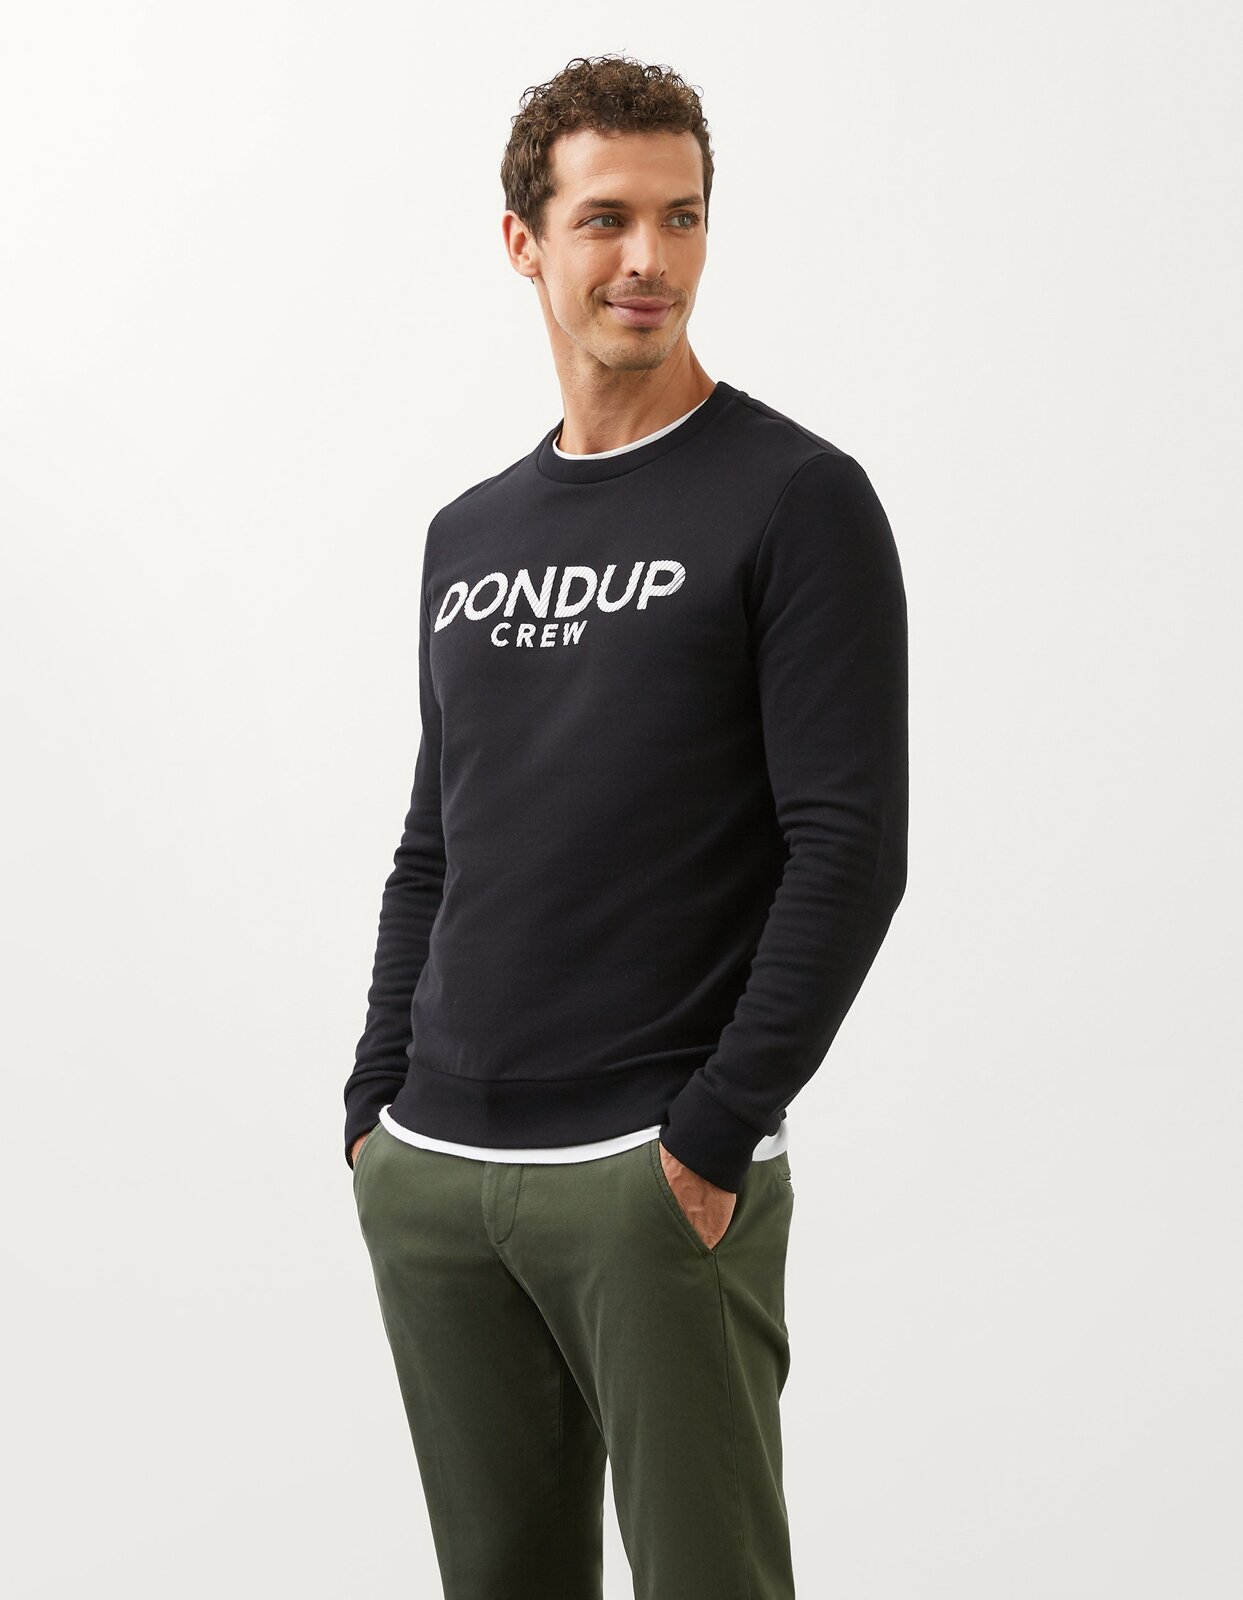 Brushed Cotton Sweatshirt - Dondup